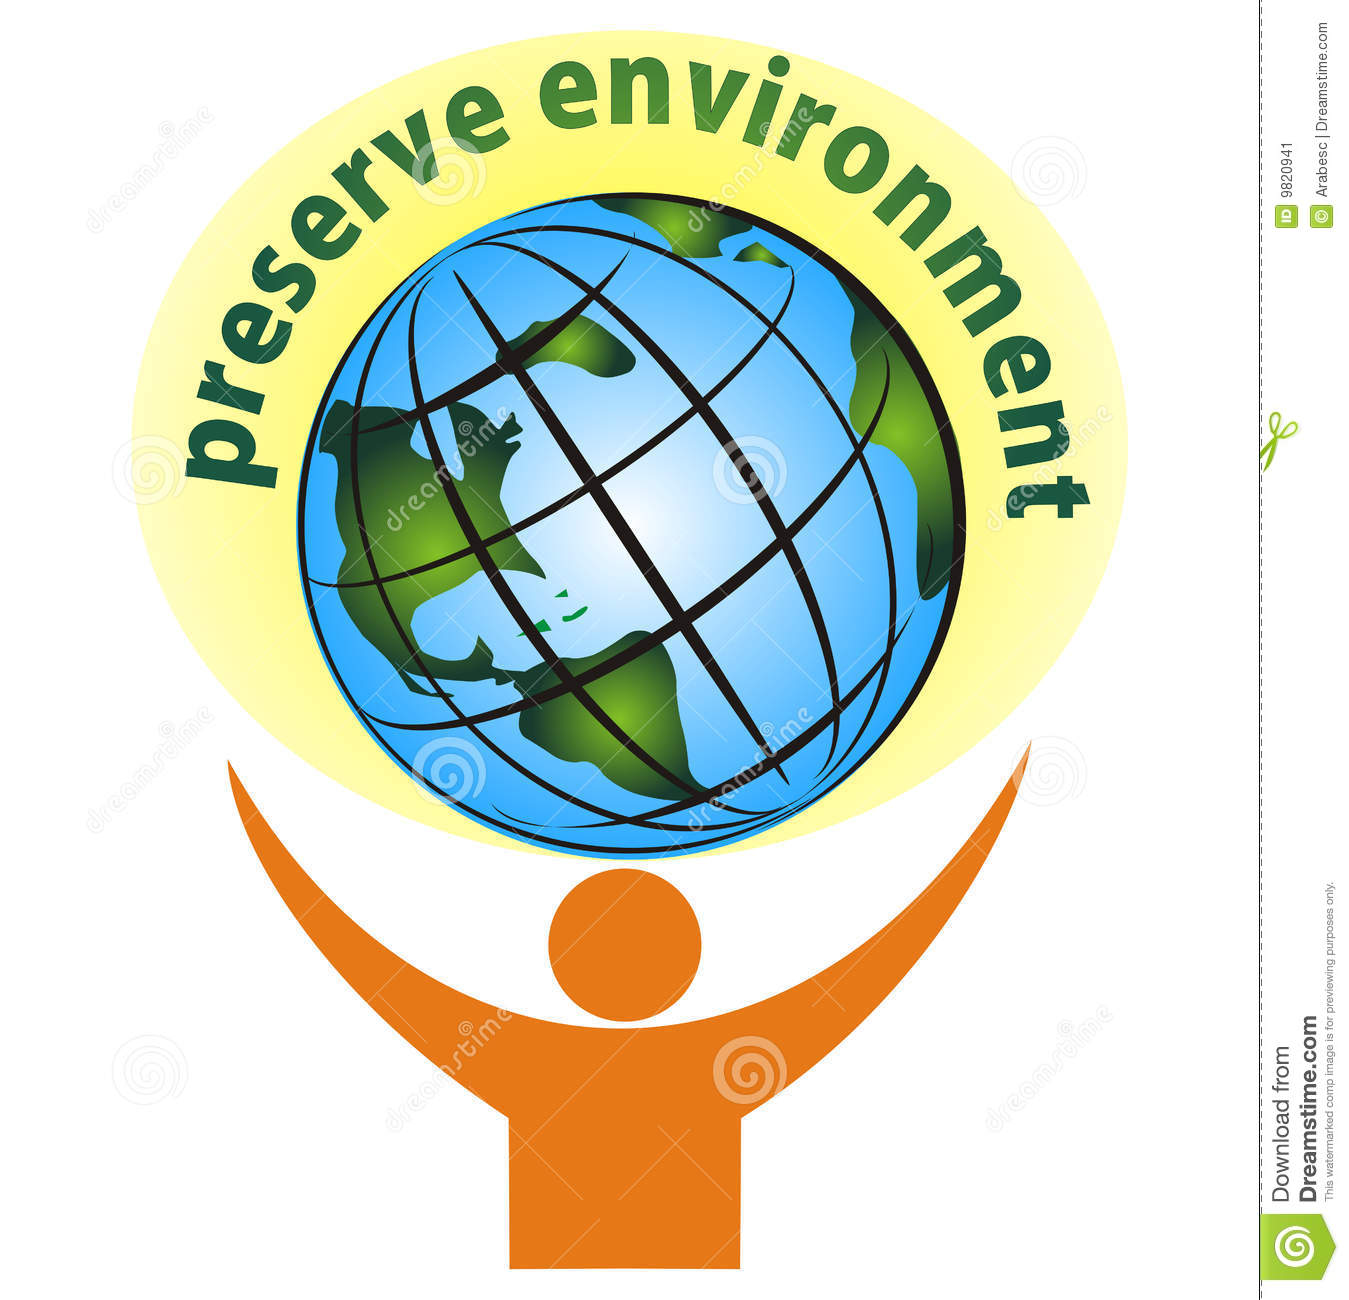 Preserve environment - vector illustration isolated on white.